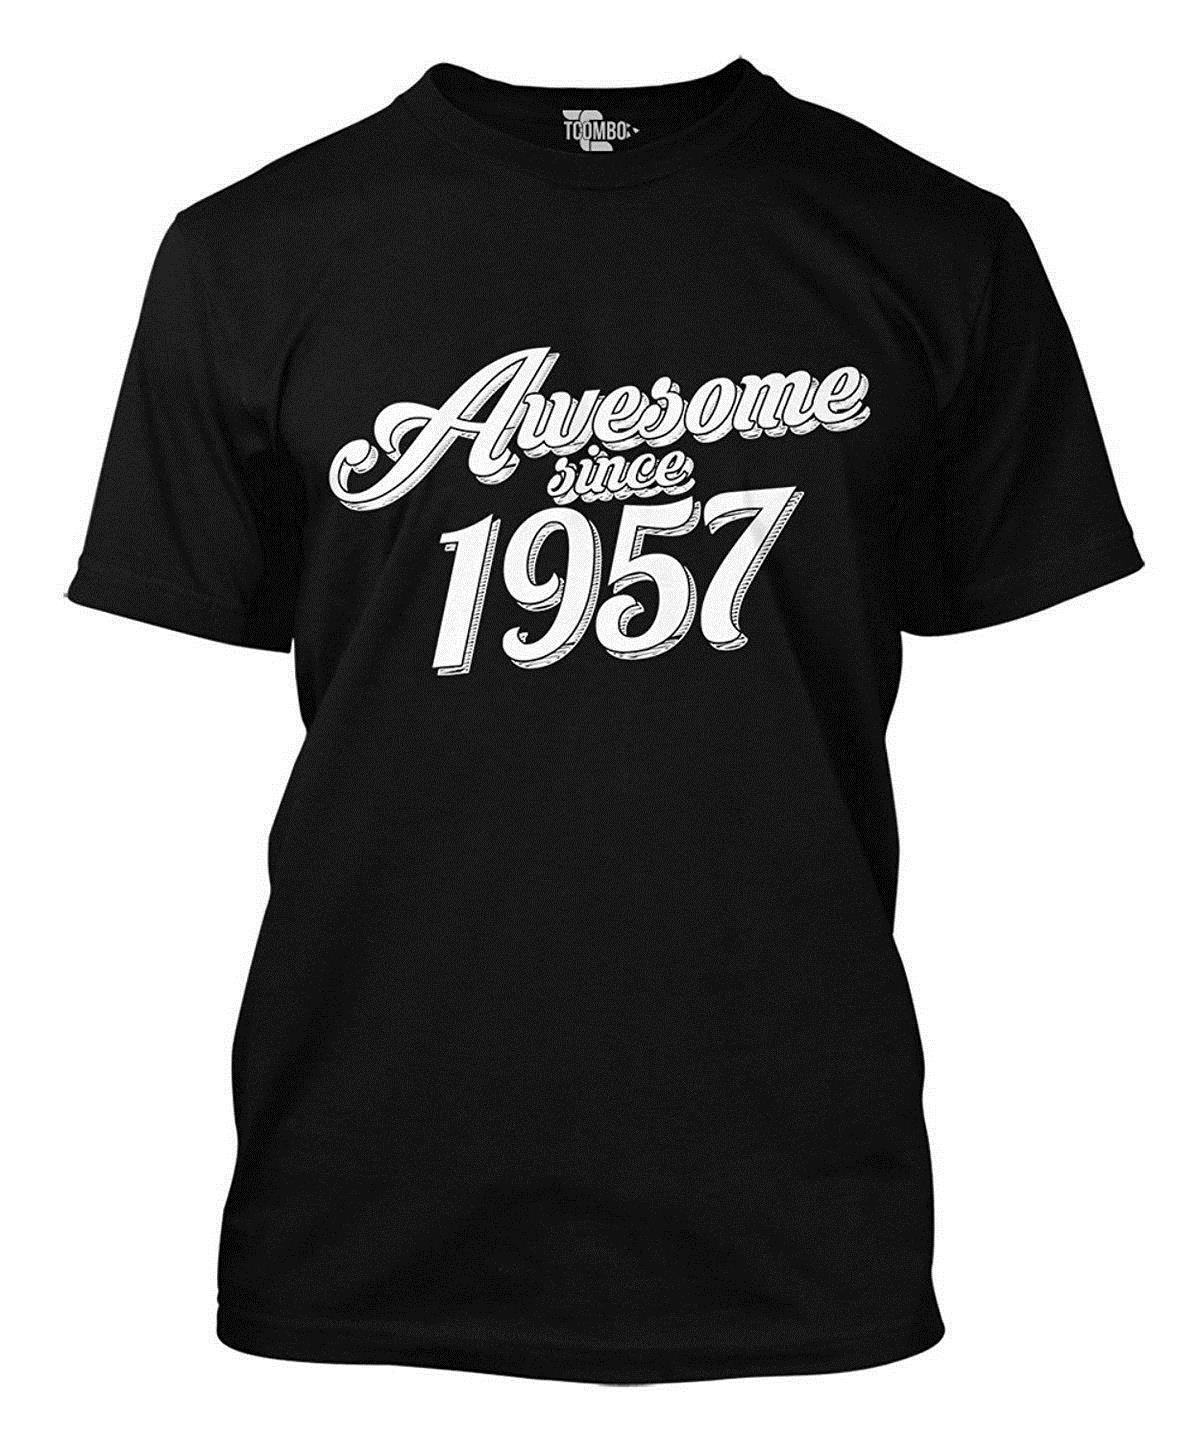 Awesome Since 1957 60th Birthday MenS T Shirt Tee 100 Cotton Short Sleeve Summer Men Original Cool Tshirt Designs Create From